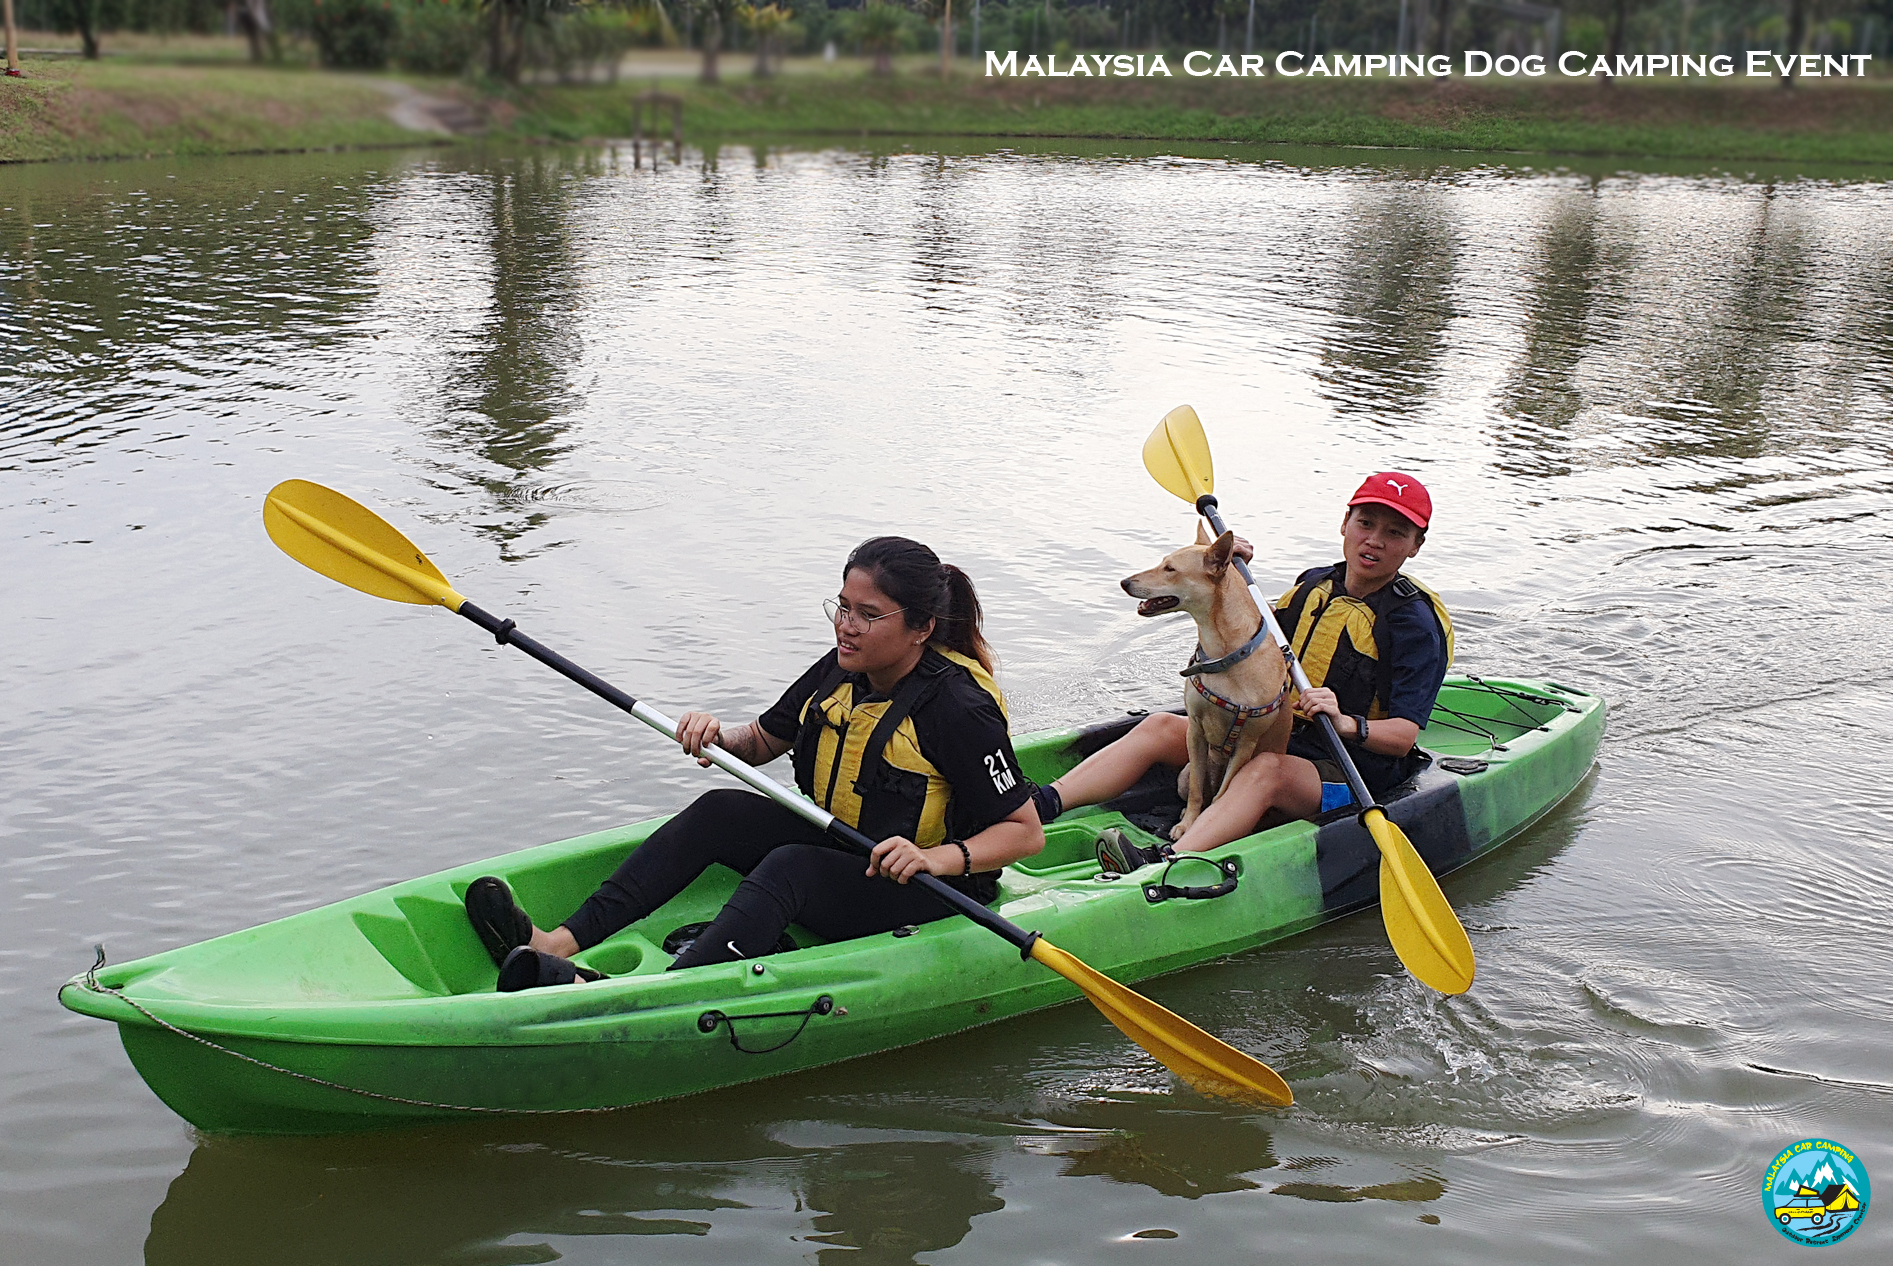 kayaking_dog_dog_camping_event_selangor_camping_site_malaysia_car_camping_private_event_organizer-9